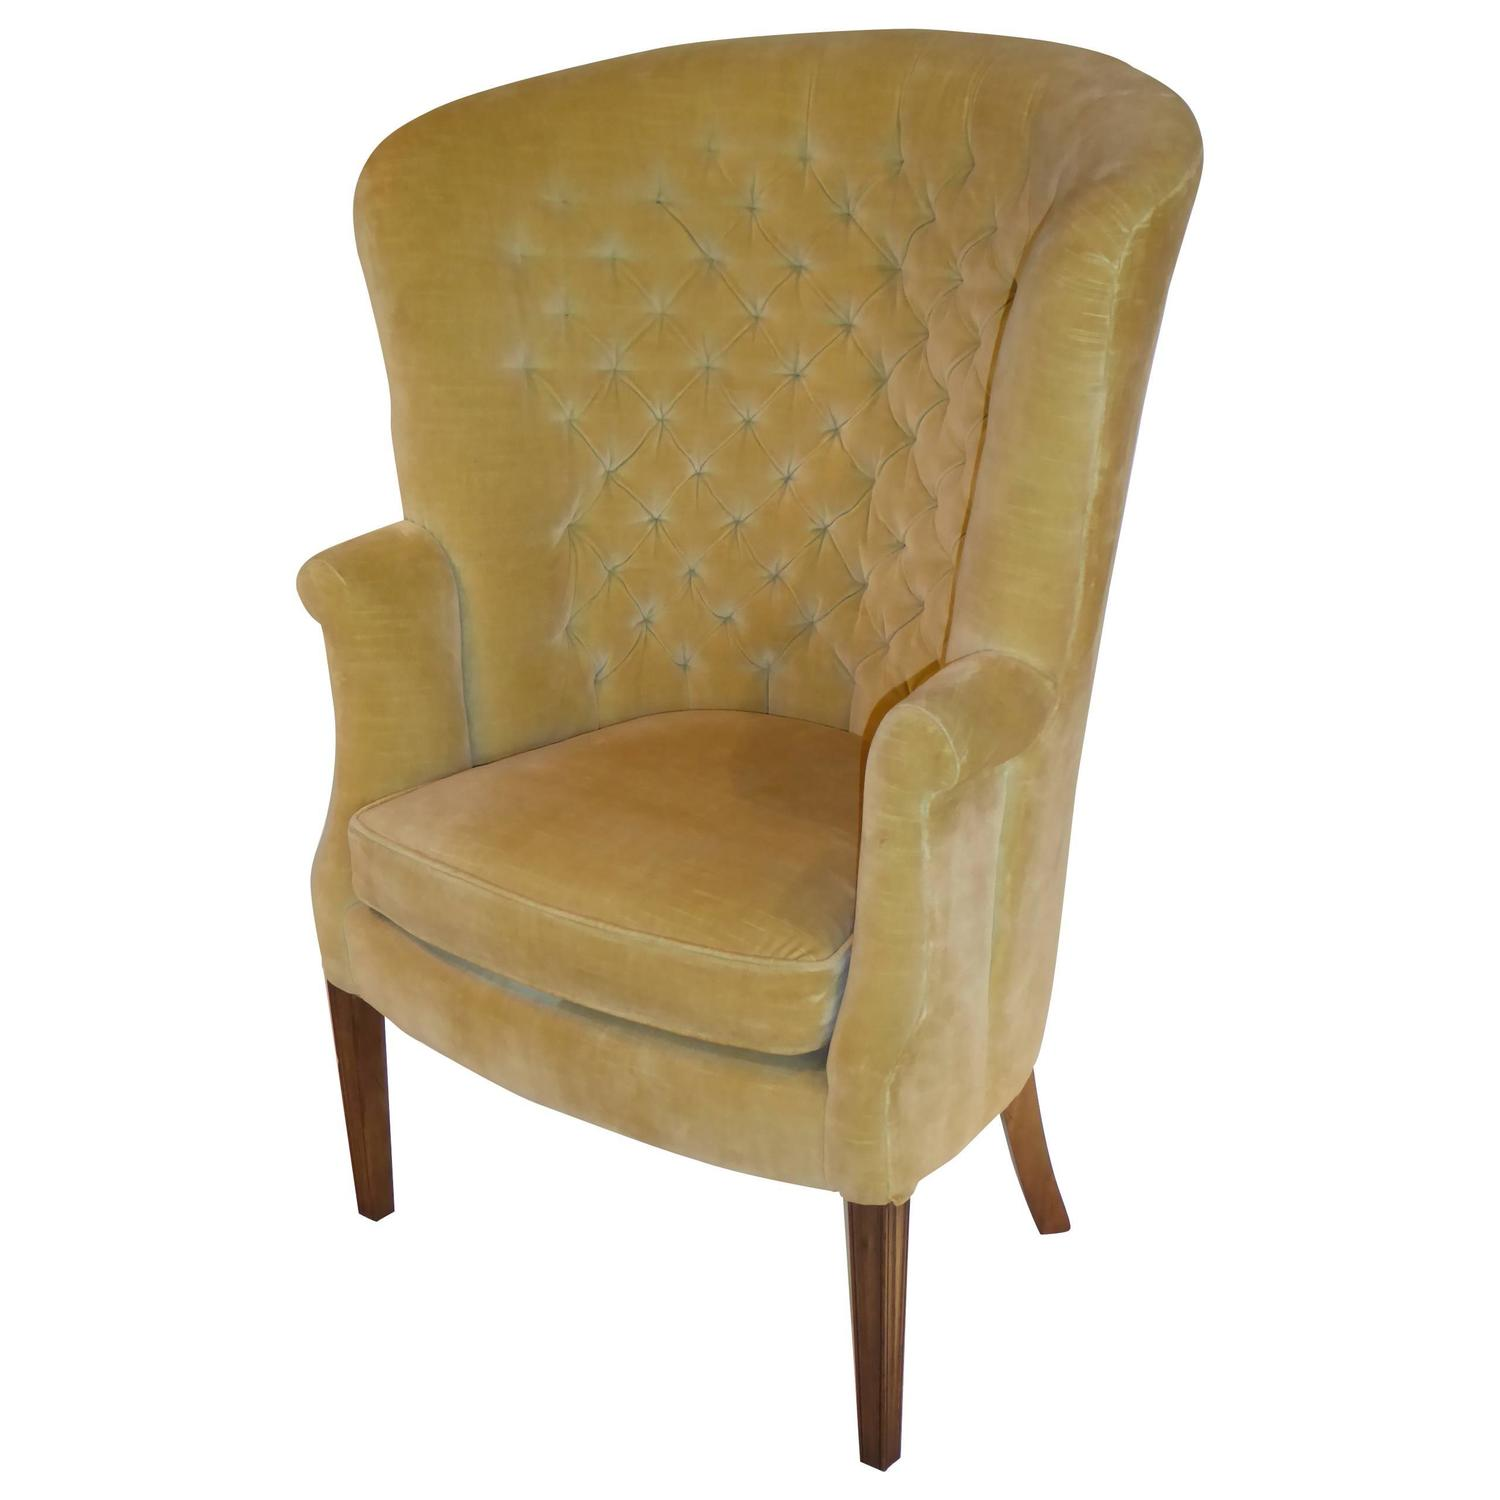 Architectural High Back Tufted Velvet Wingback Chair For